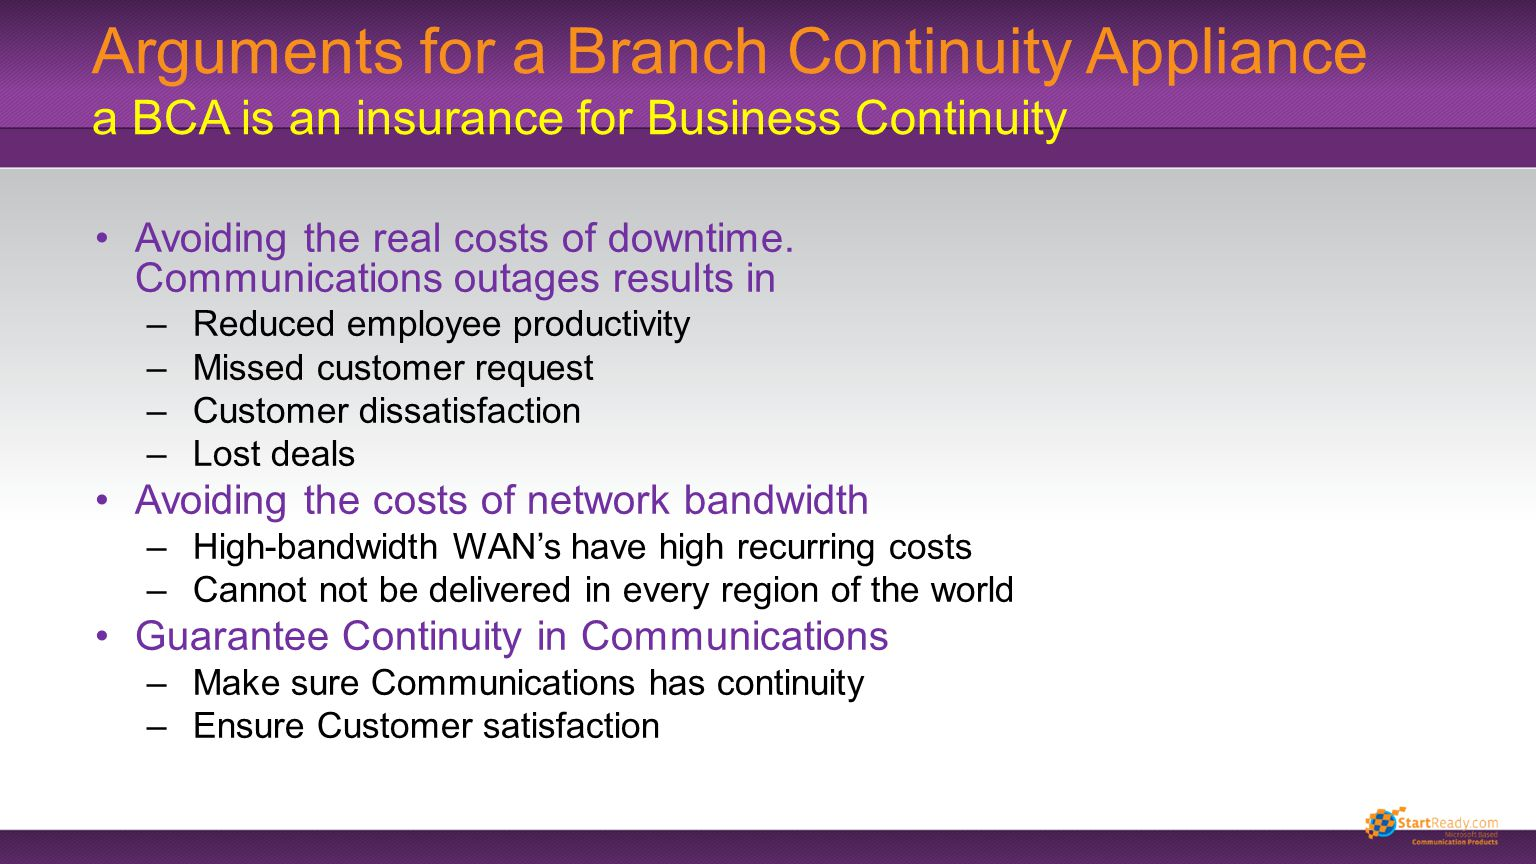 Arguments for a Branch Continuity Appliance a BCA is an insurance for Business Continuity Avoiding the real costs of downtime. Communications outages